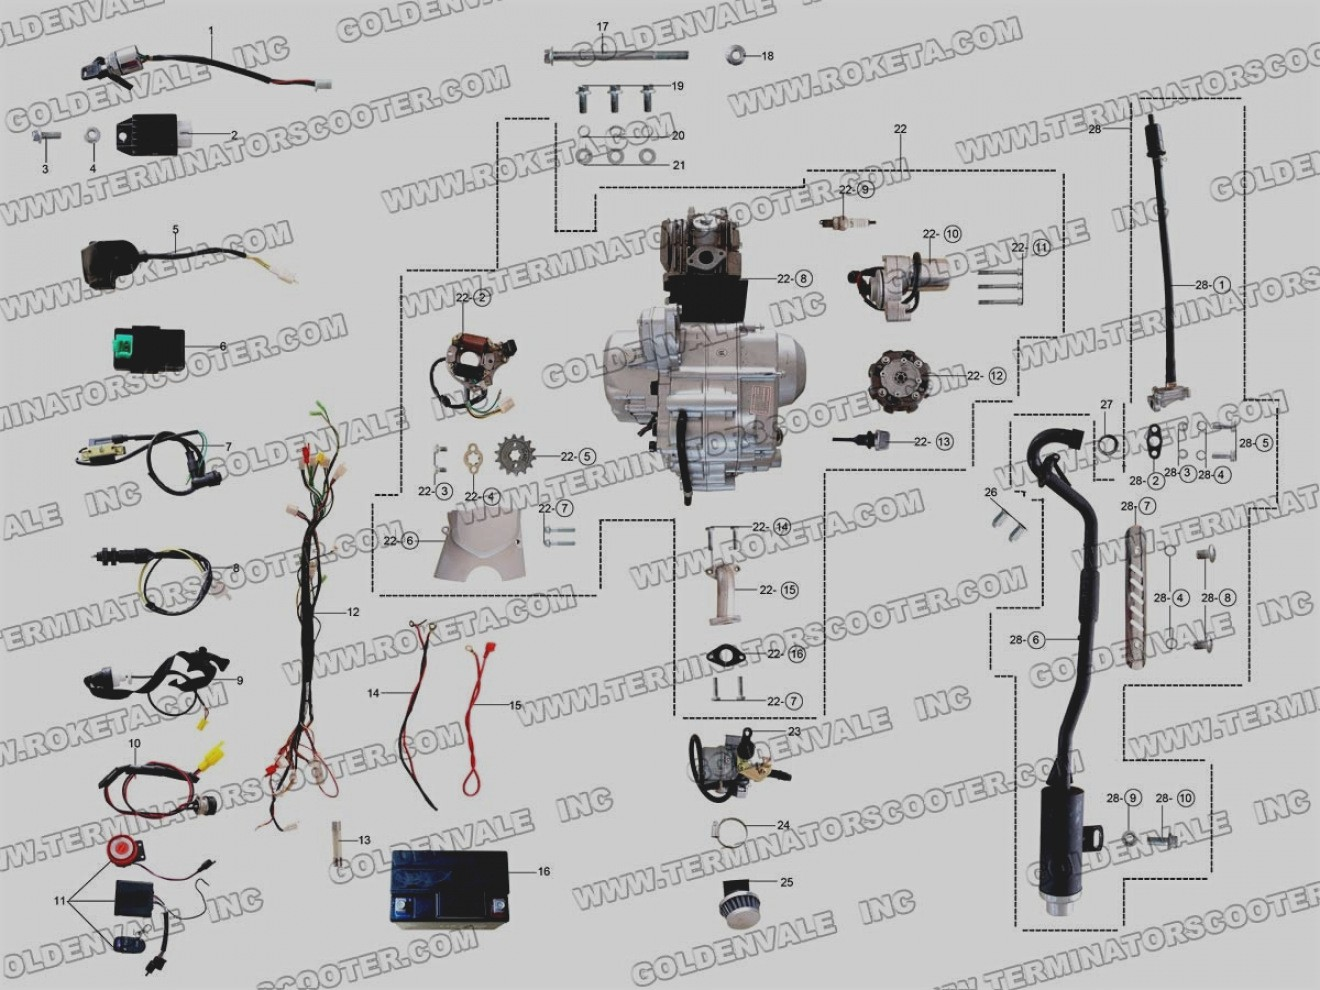 hight resolution of panther 110 rx5 wiring diagram wz schwabenschamanen de u2022panther 110 rx5 wiring diagram 4